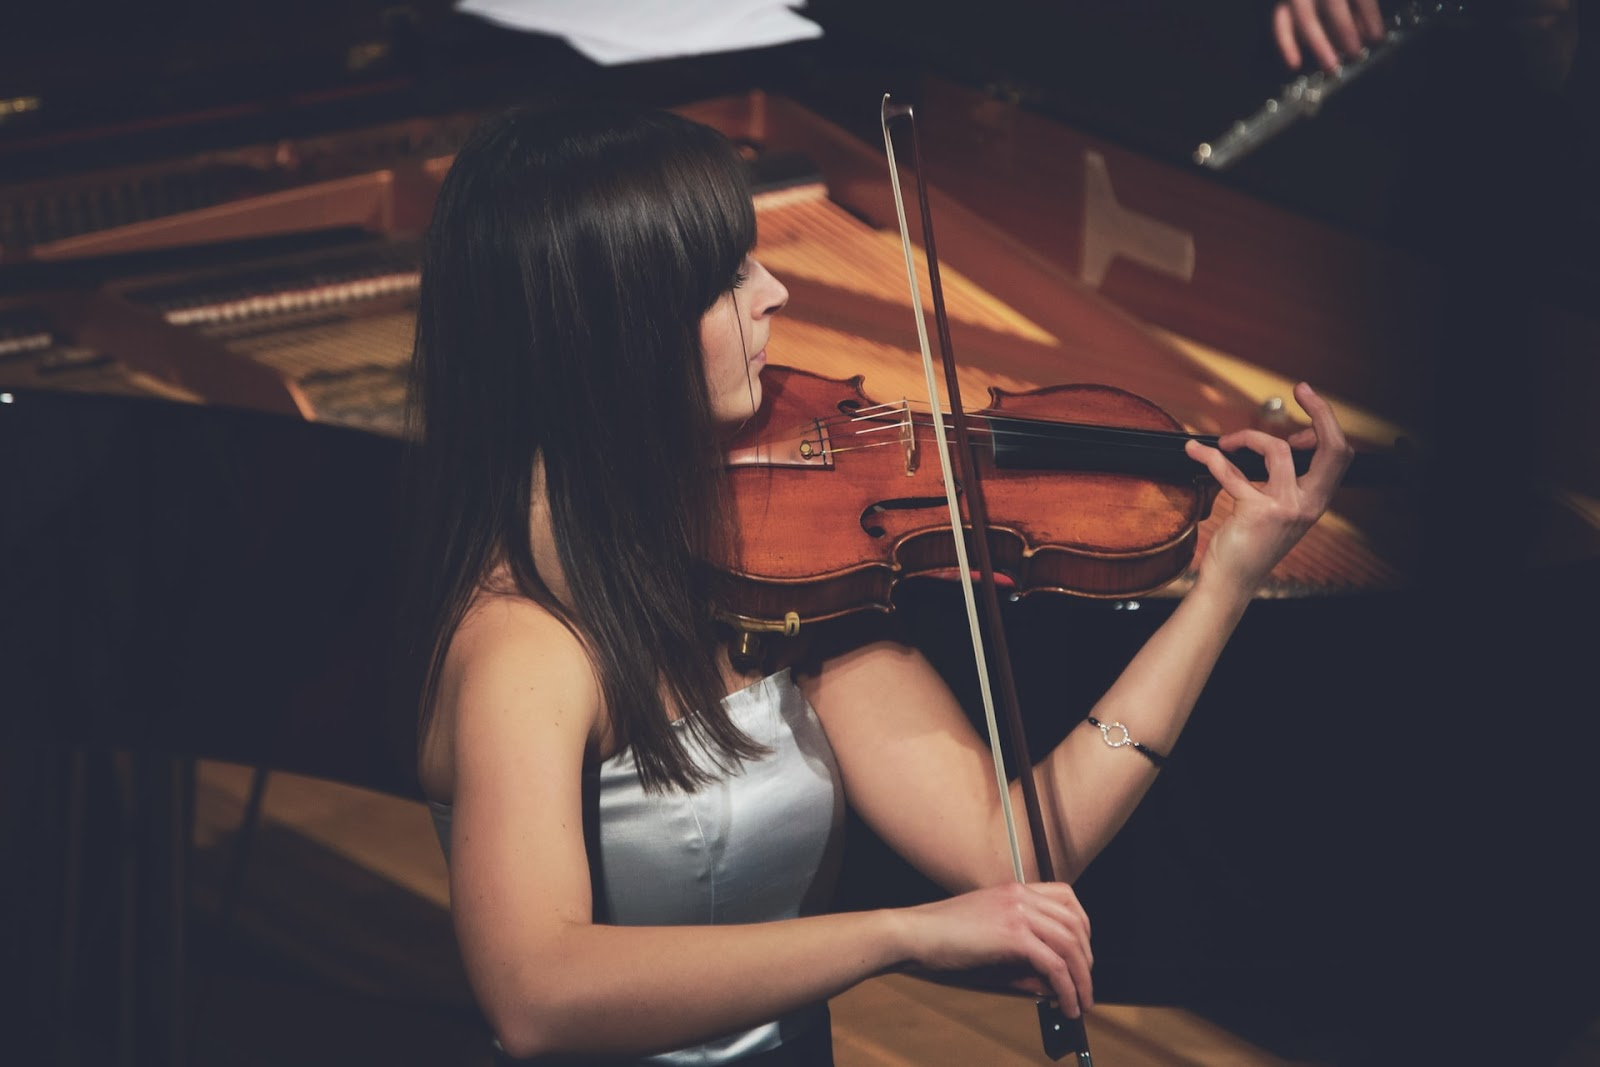 #100daysofpractice is a daily creative challenge started by a violinist.